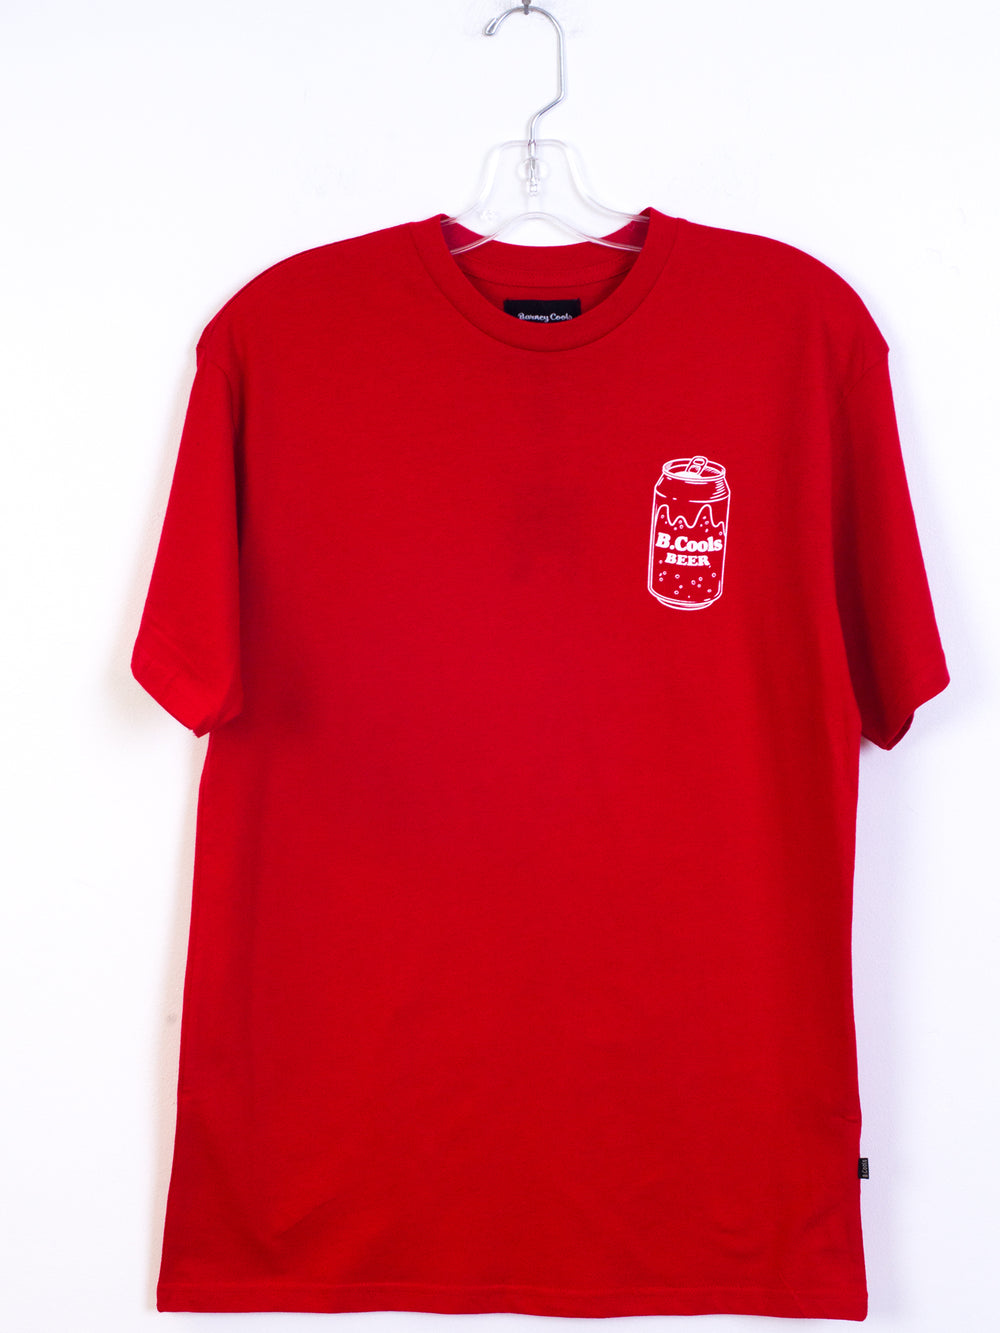 MENS B.COOL BEER SHORT SLEEVE T-SHIRT - RED